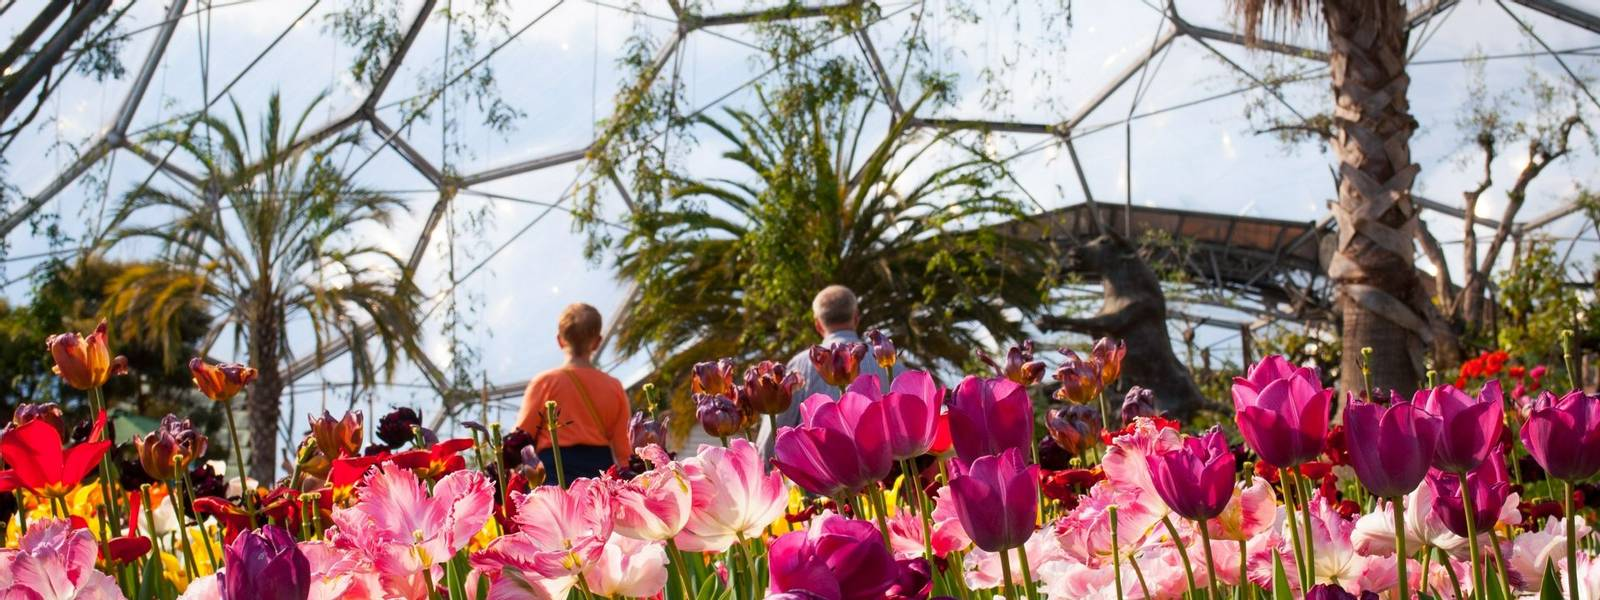 GardenTours-StIves-EdenProject-AdobeStock_145112347.jpeg